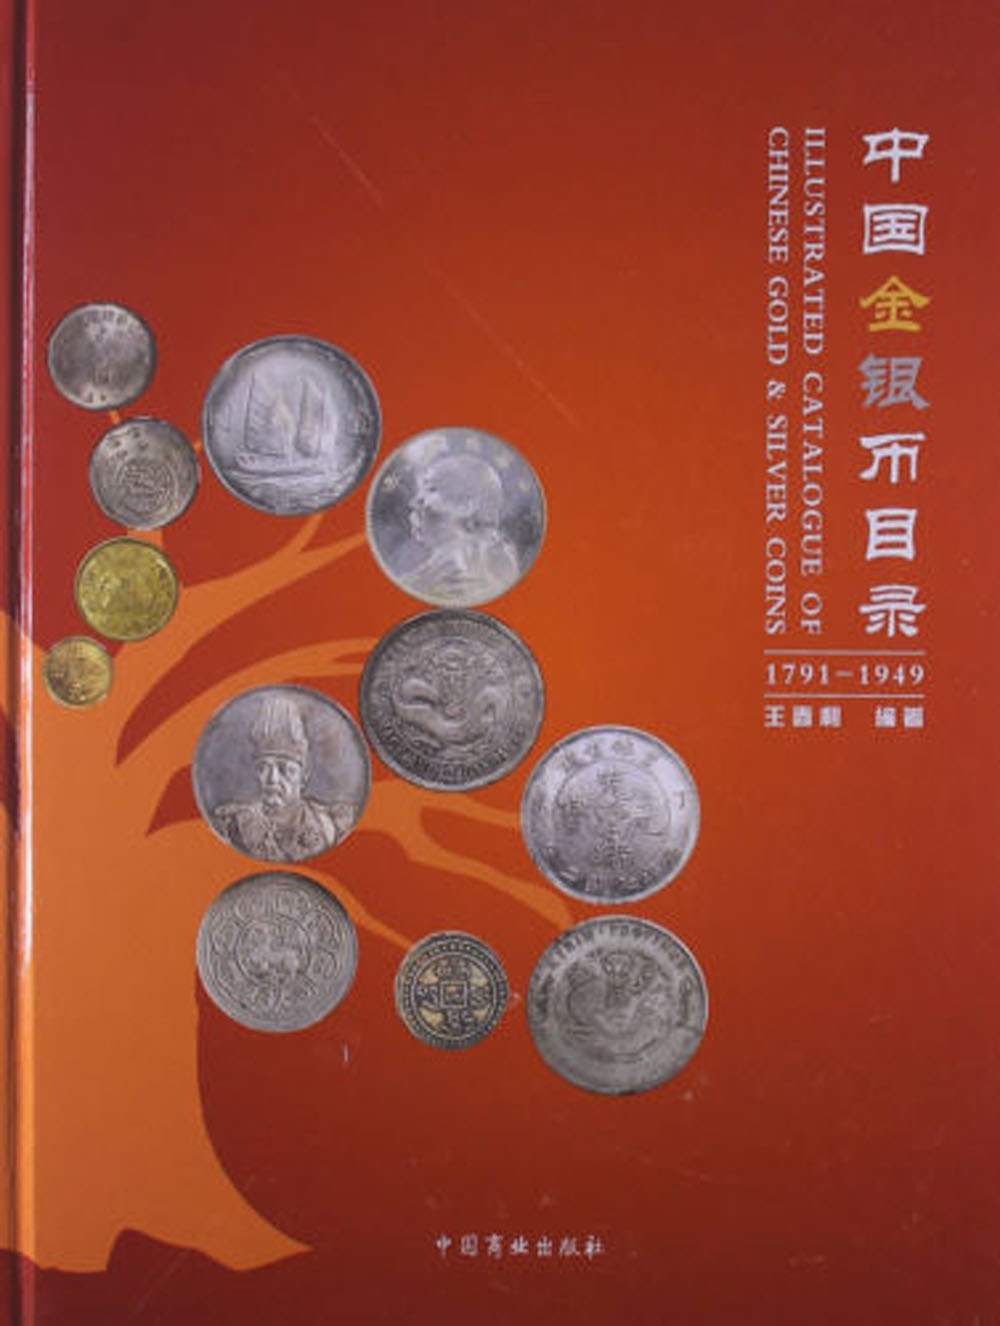 Illustrated Catalogue Of Chinese Gold&silver Coins 1791-1949